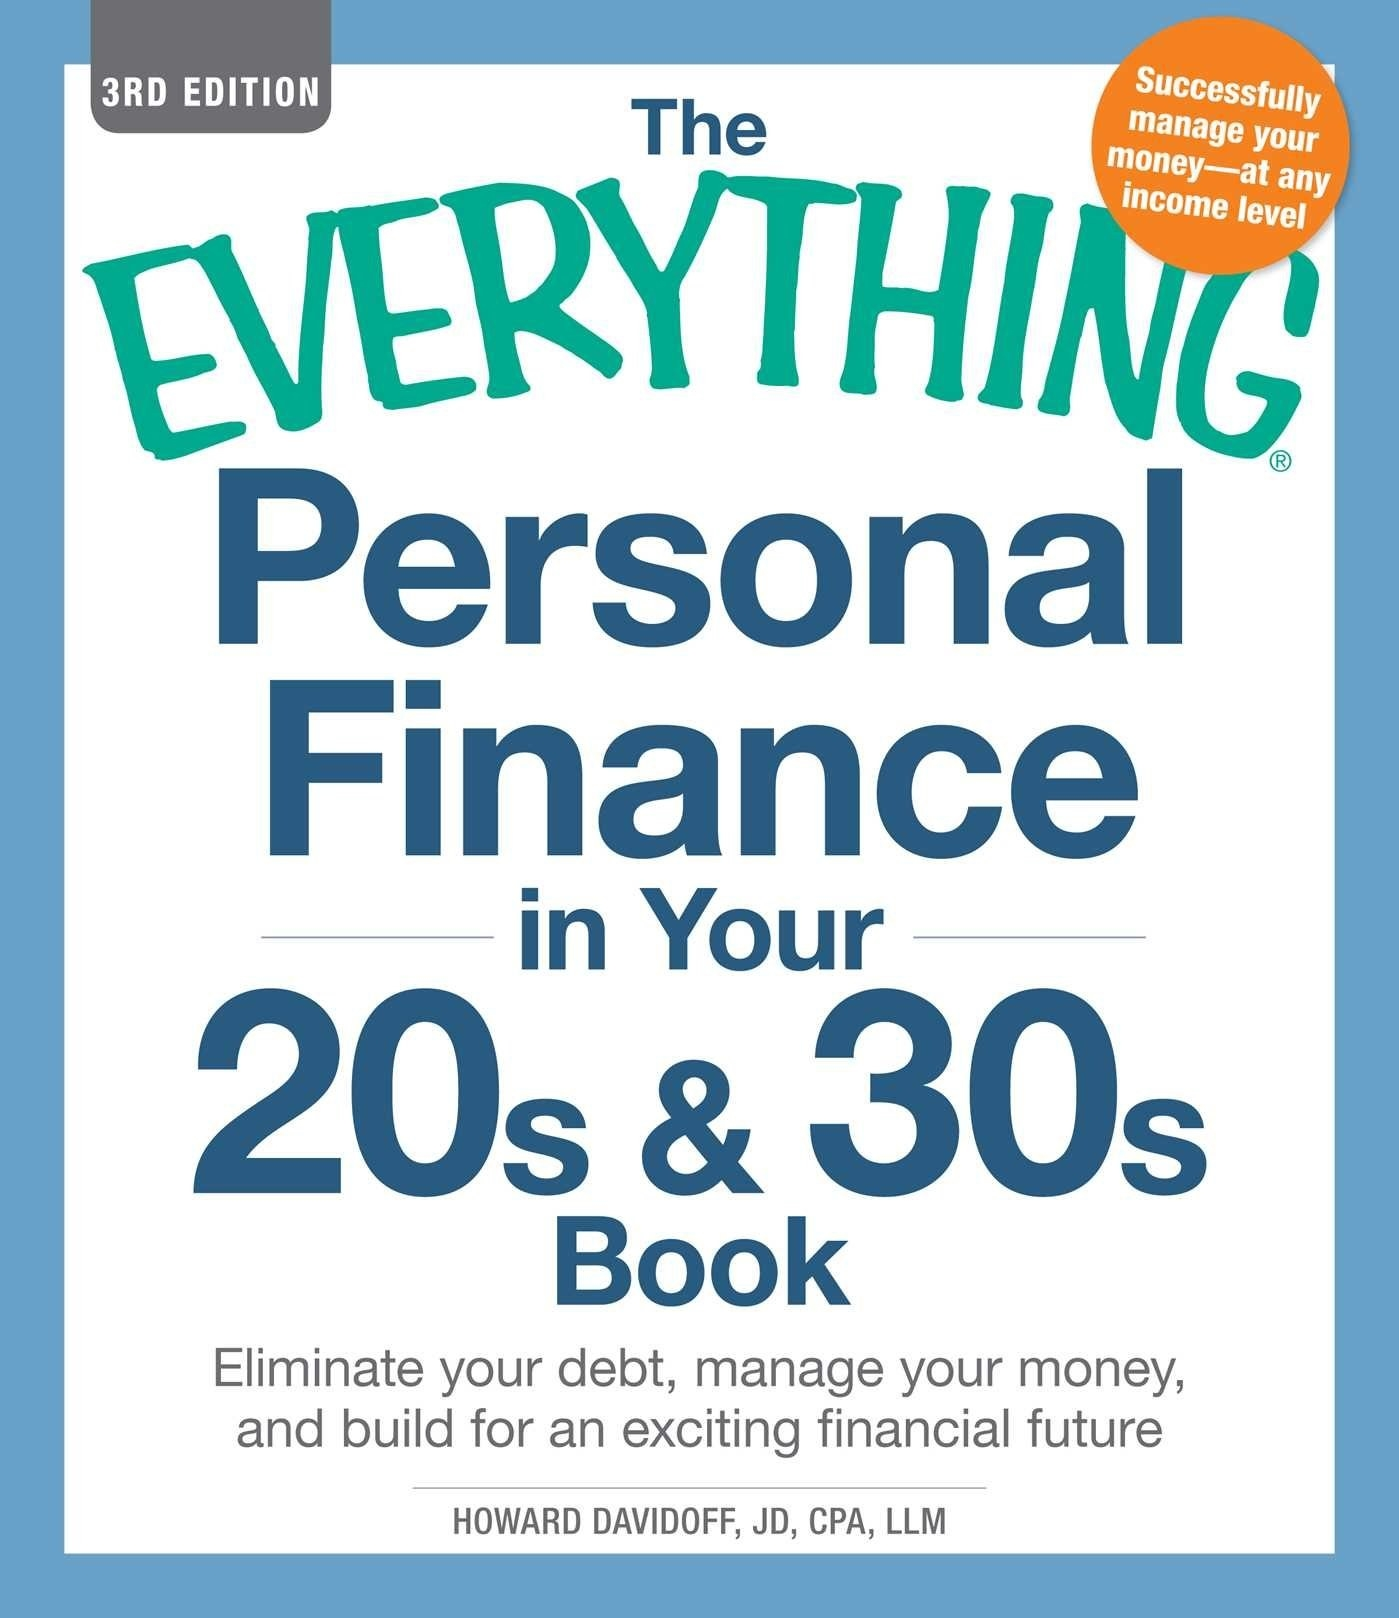 Eliminate your debt, manage your money, and build for an exciting financial future